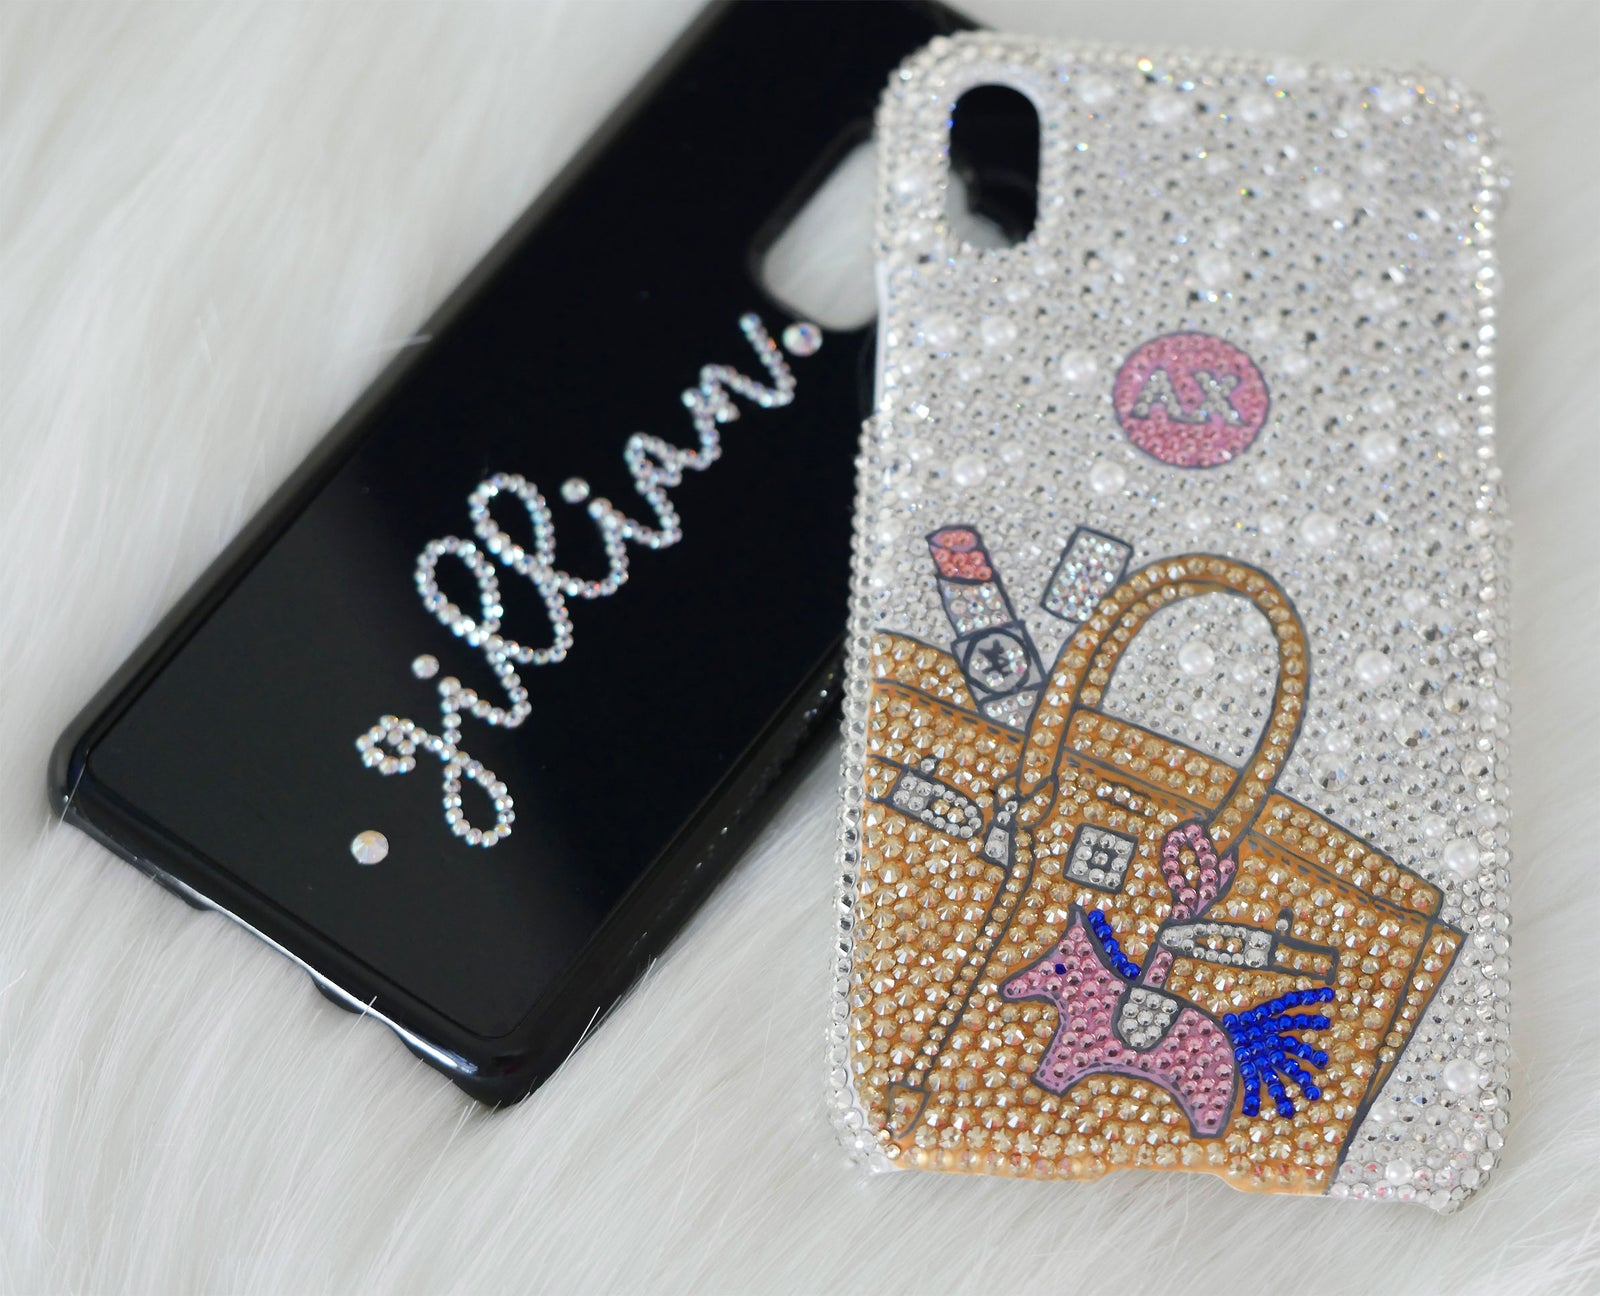 Apple iPhone XS Max Swarovski Crystal Cases